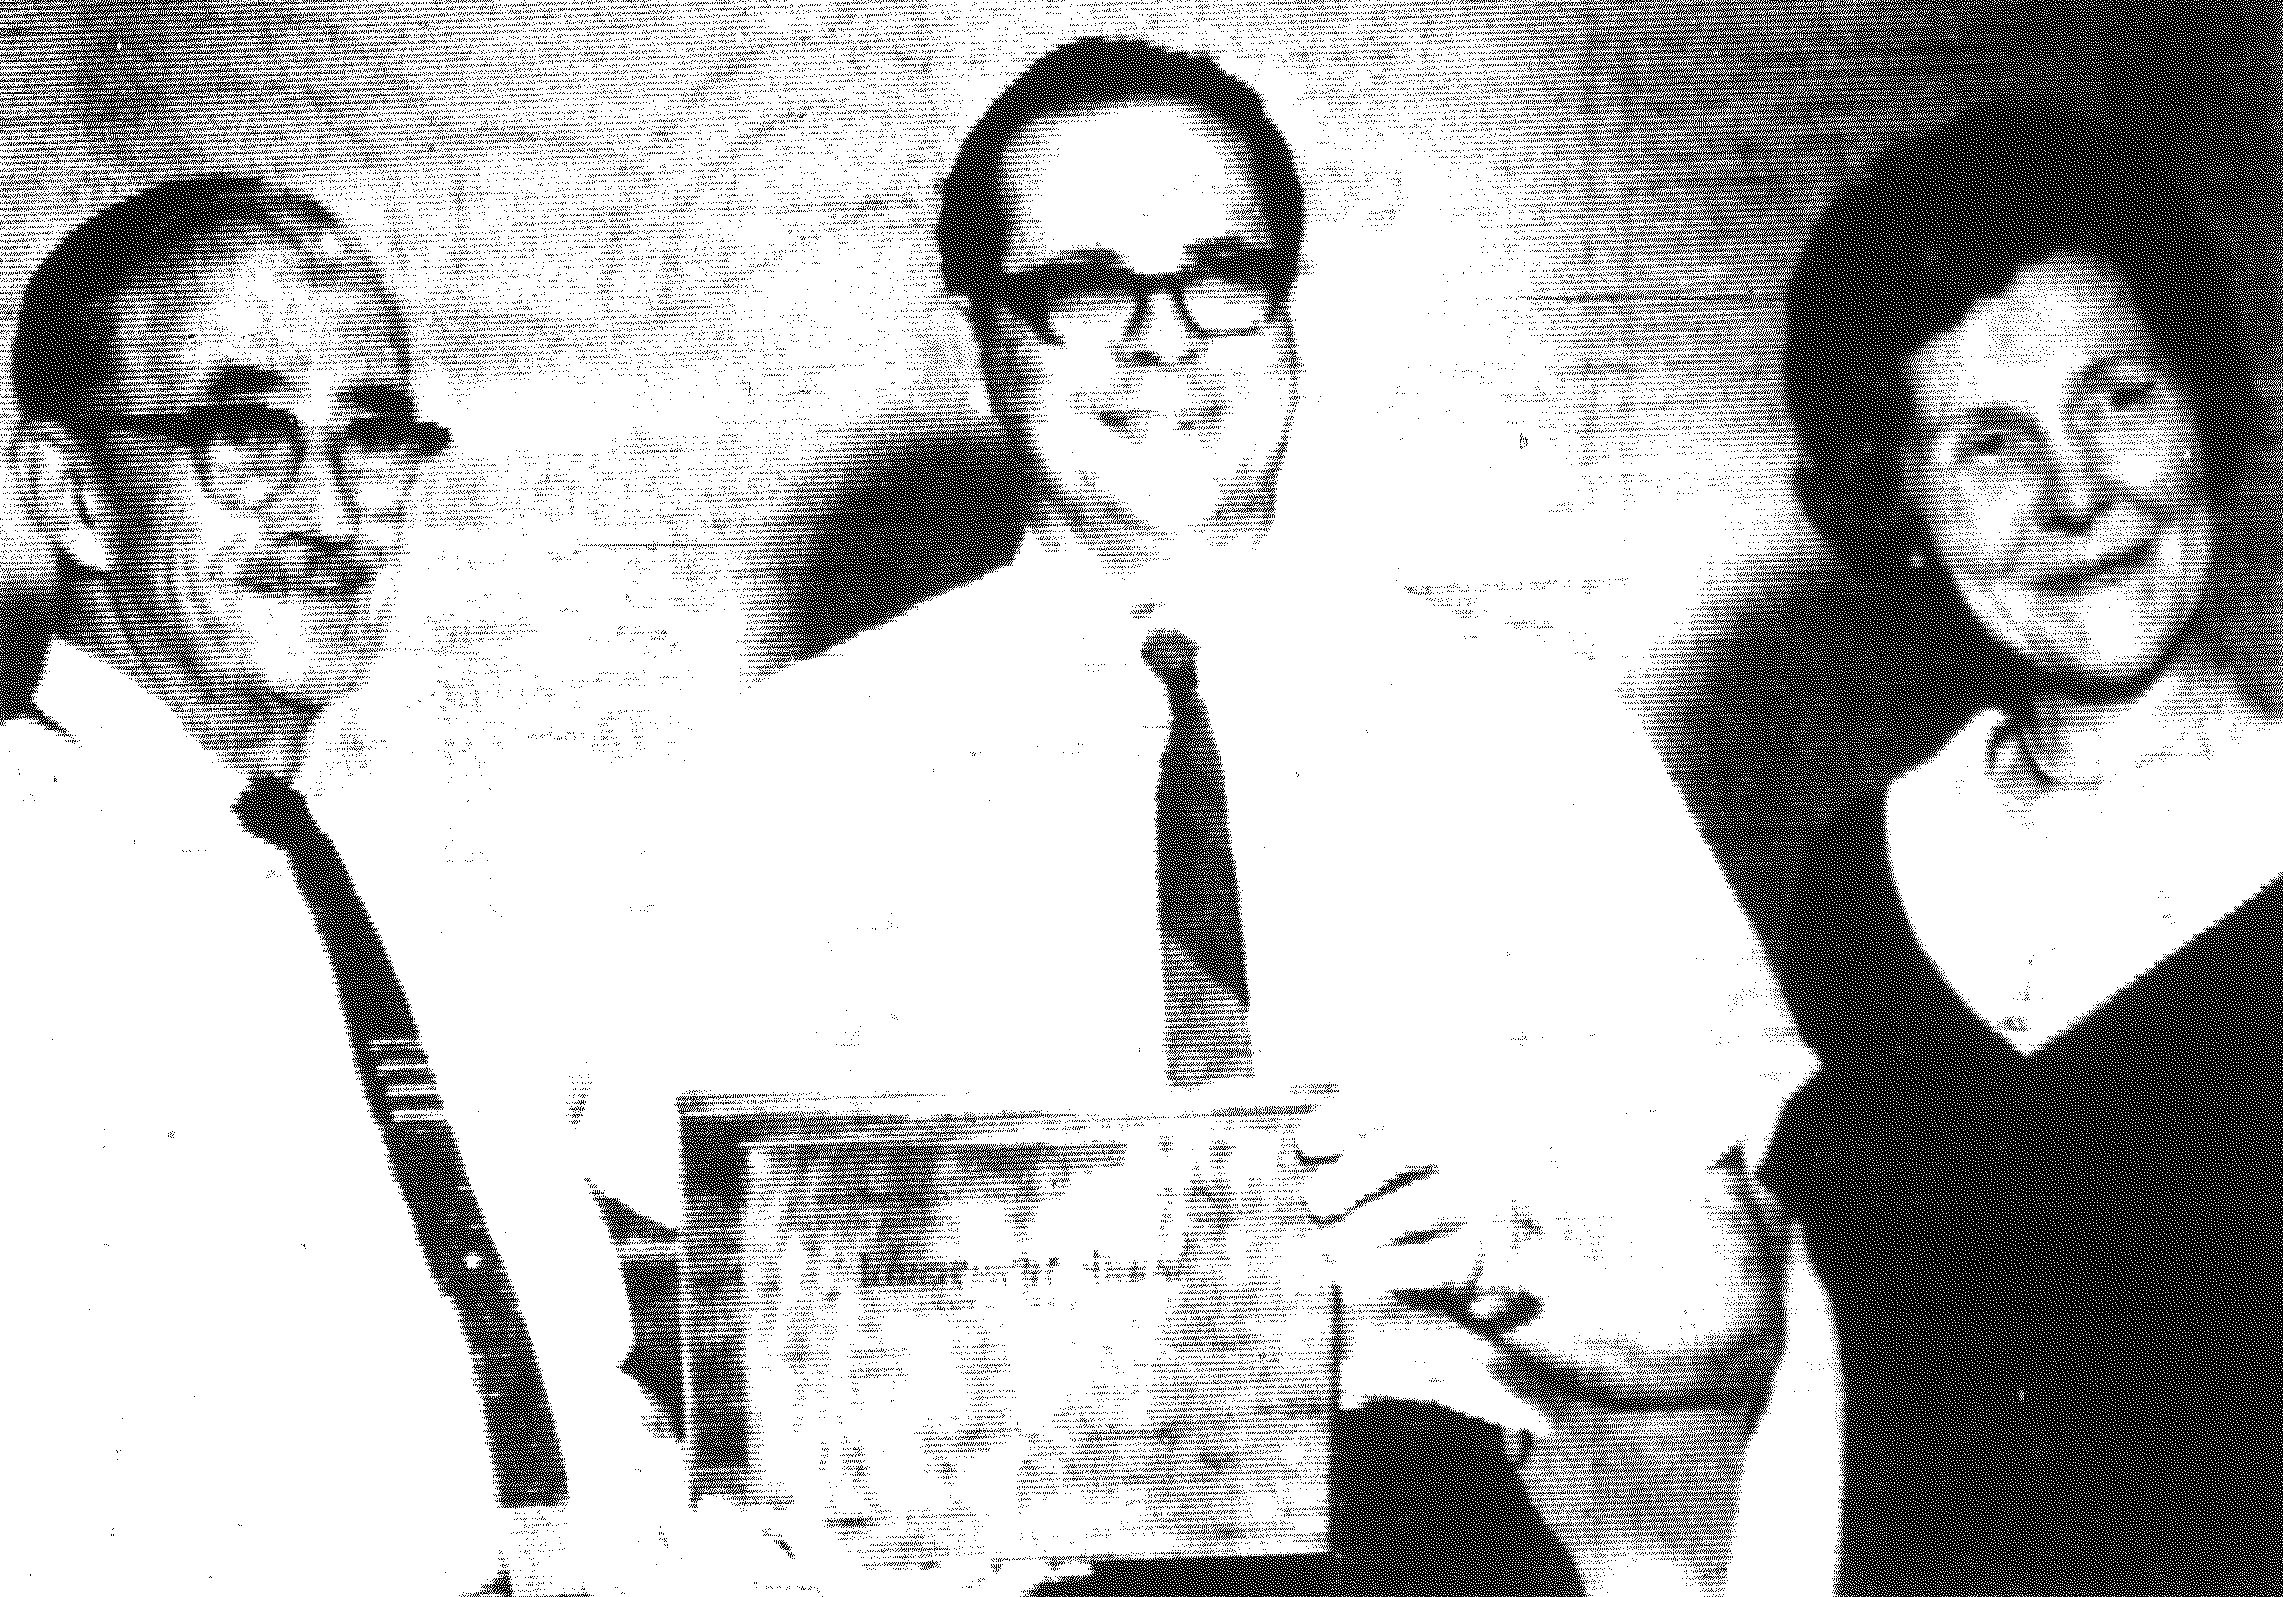 1967 - M.R. Newton, center, who heads the Sumter Child Study Project, proudly displays the plaque signifying the project as the American Psychiatric Assn's Gold Achievement Award first-place winner. At left is John Godbey, chairman of the District 17 school board, while Mrs. Nell Dabbs, psychiatric social worker with the project, is on the right.